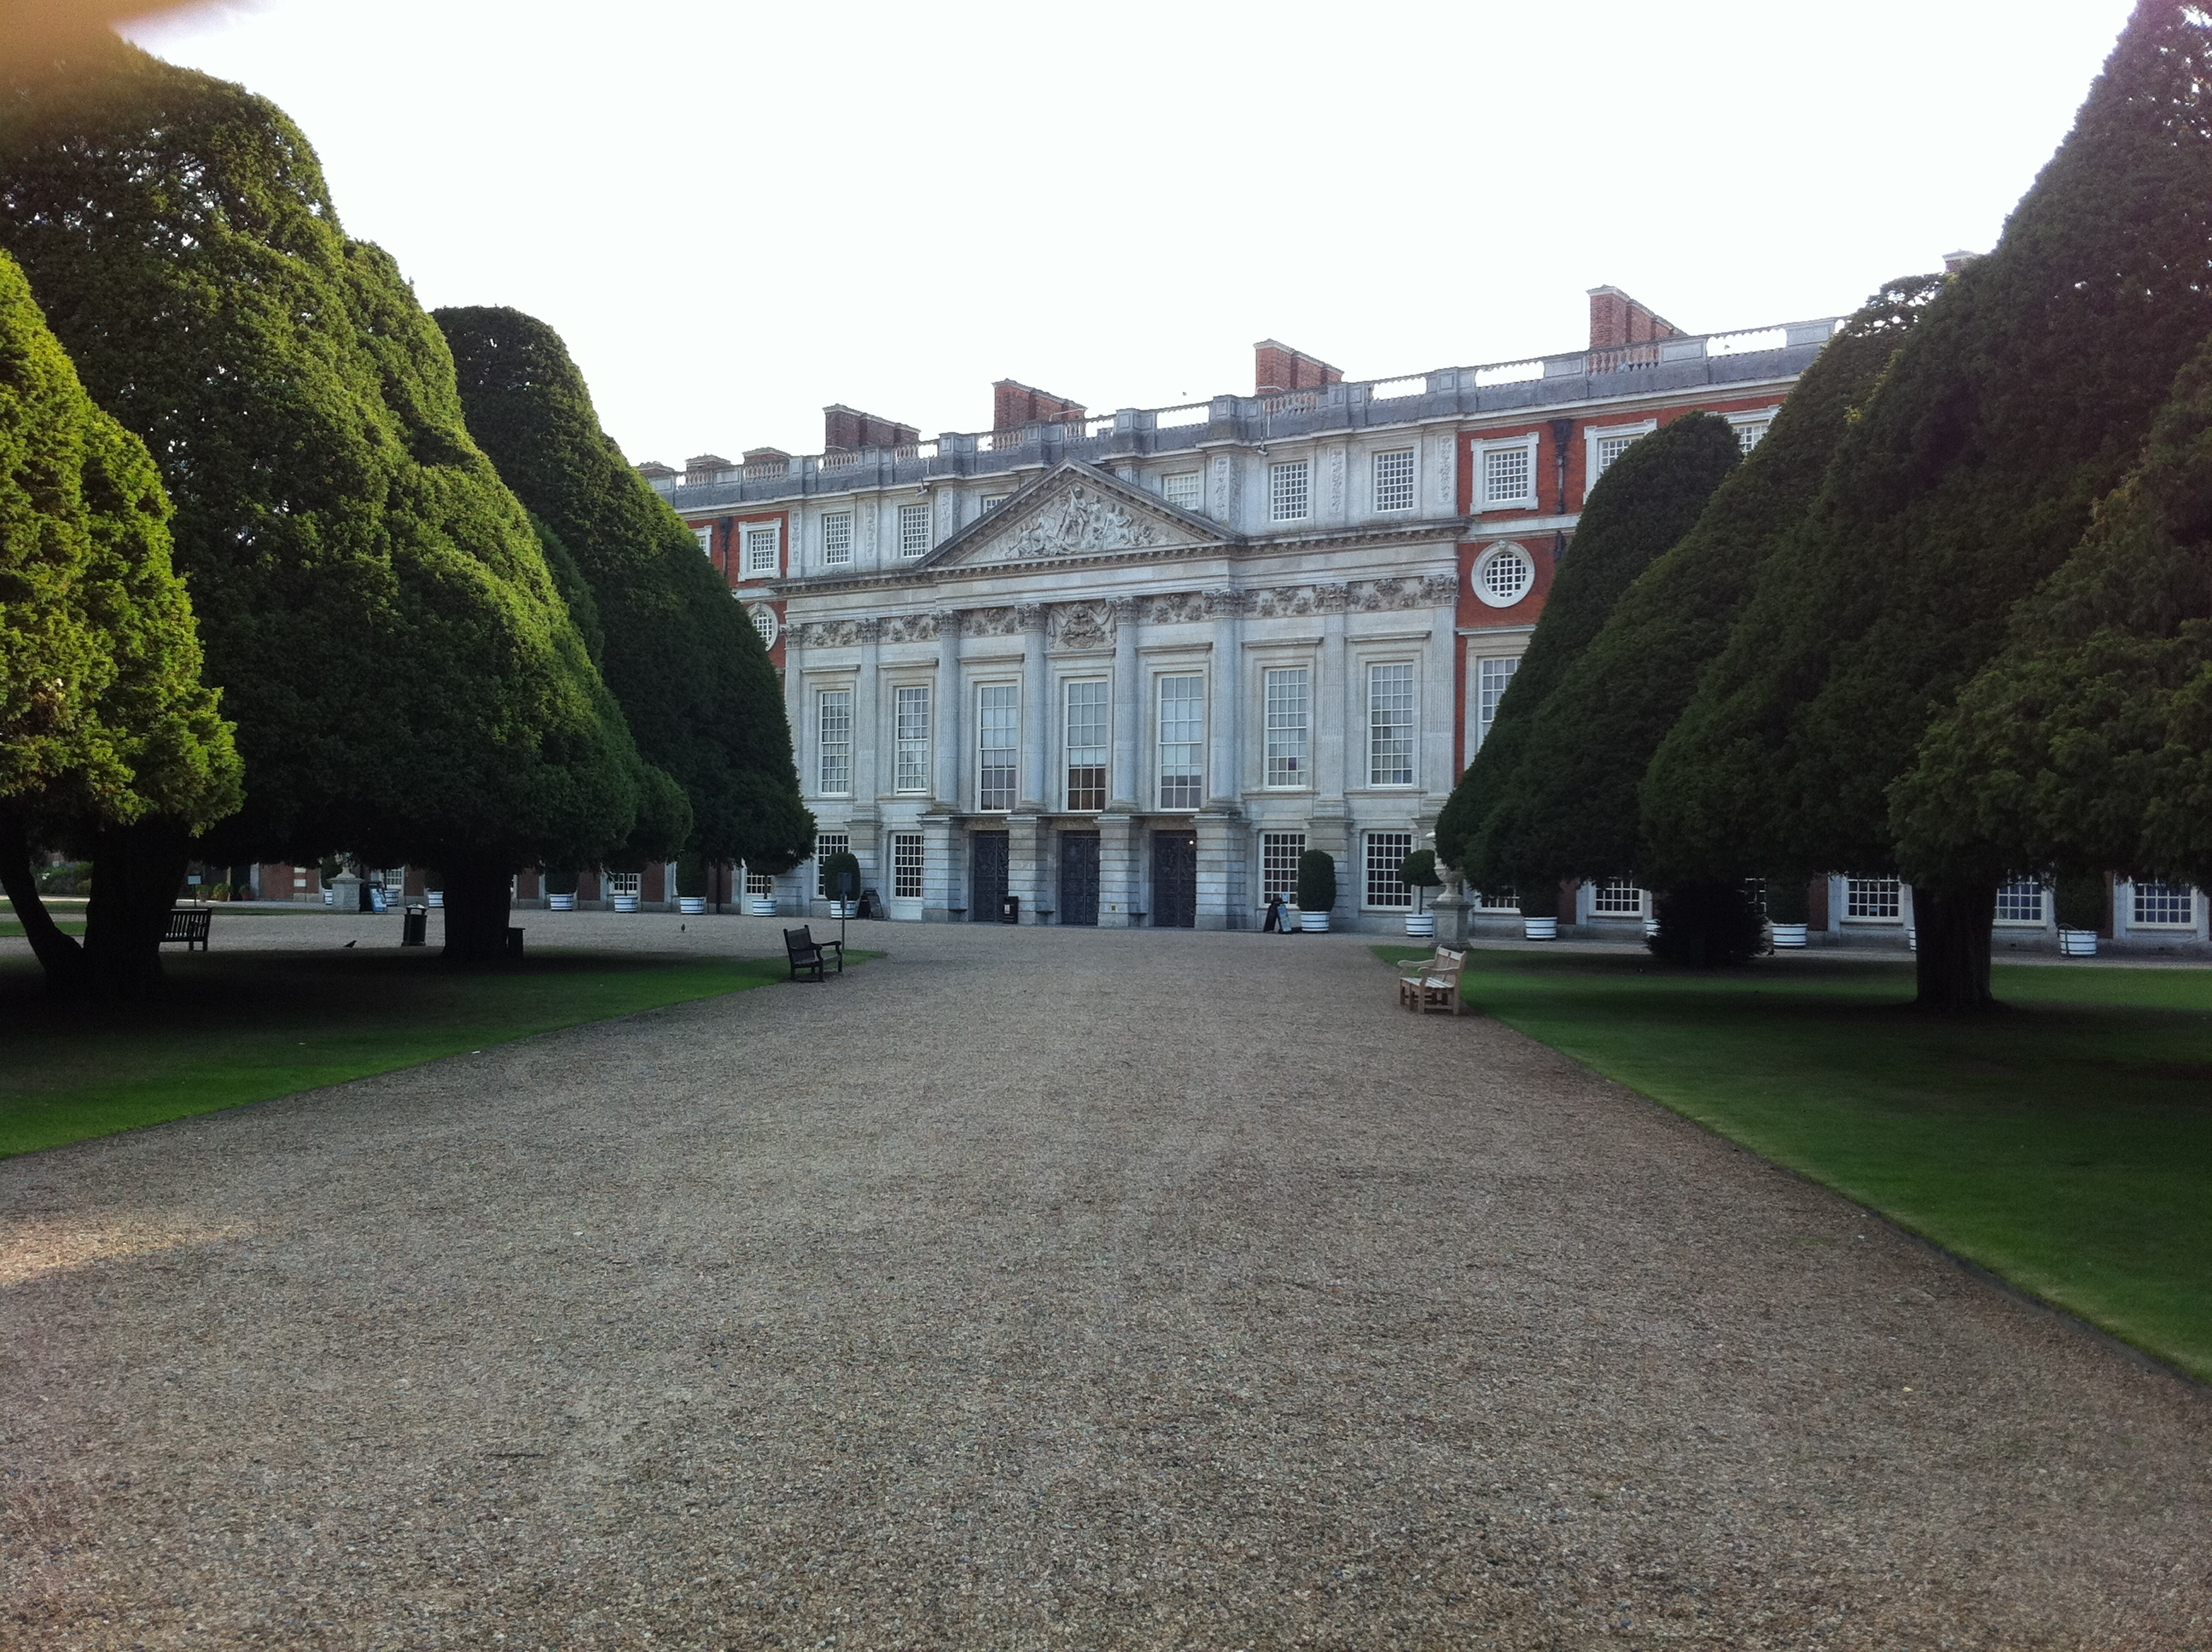 View of the East front of Hampton Court